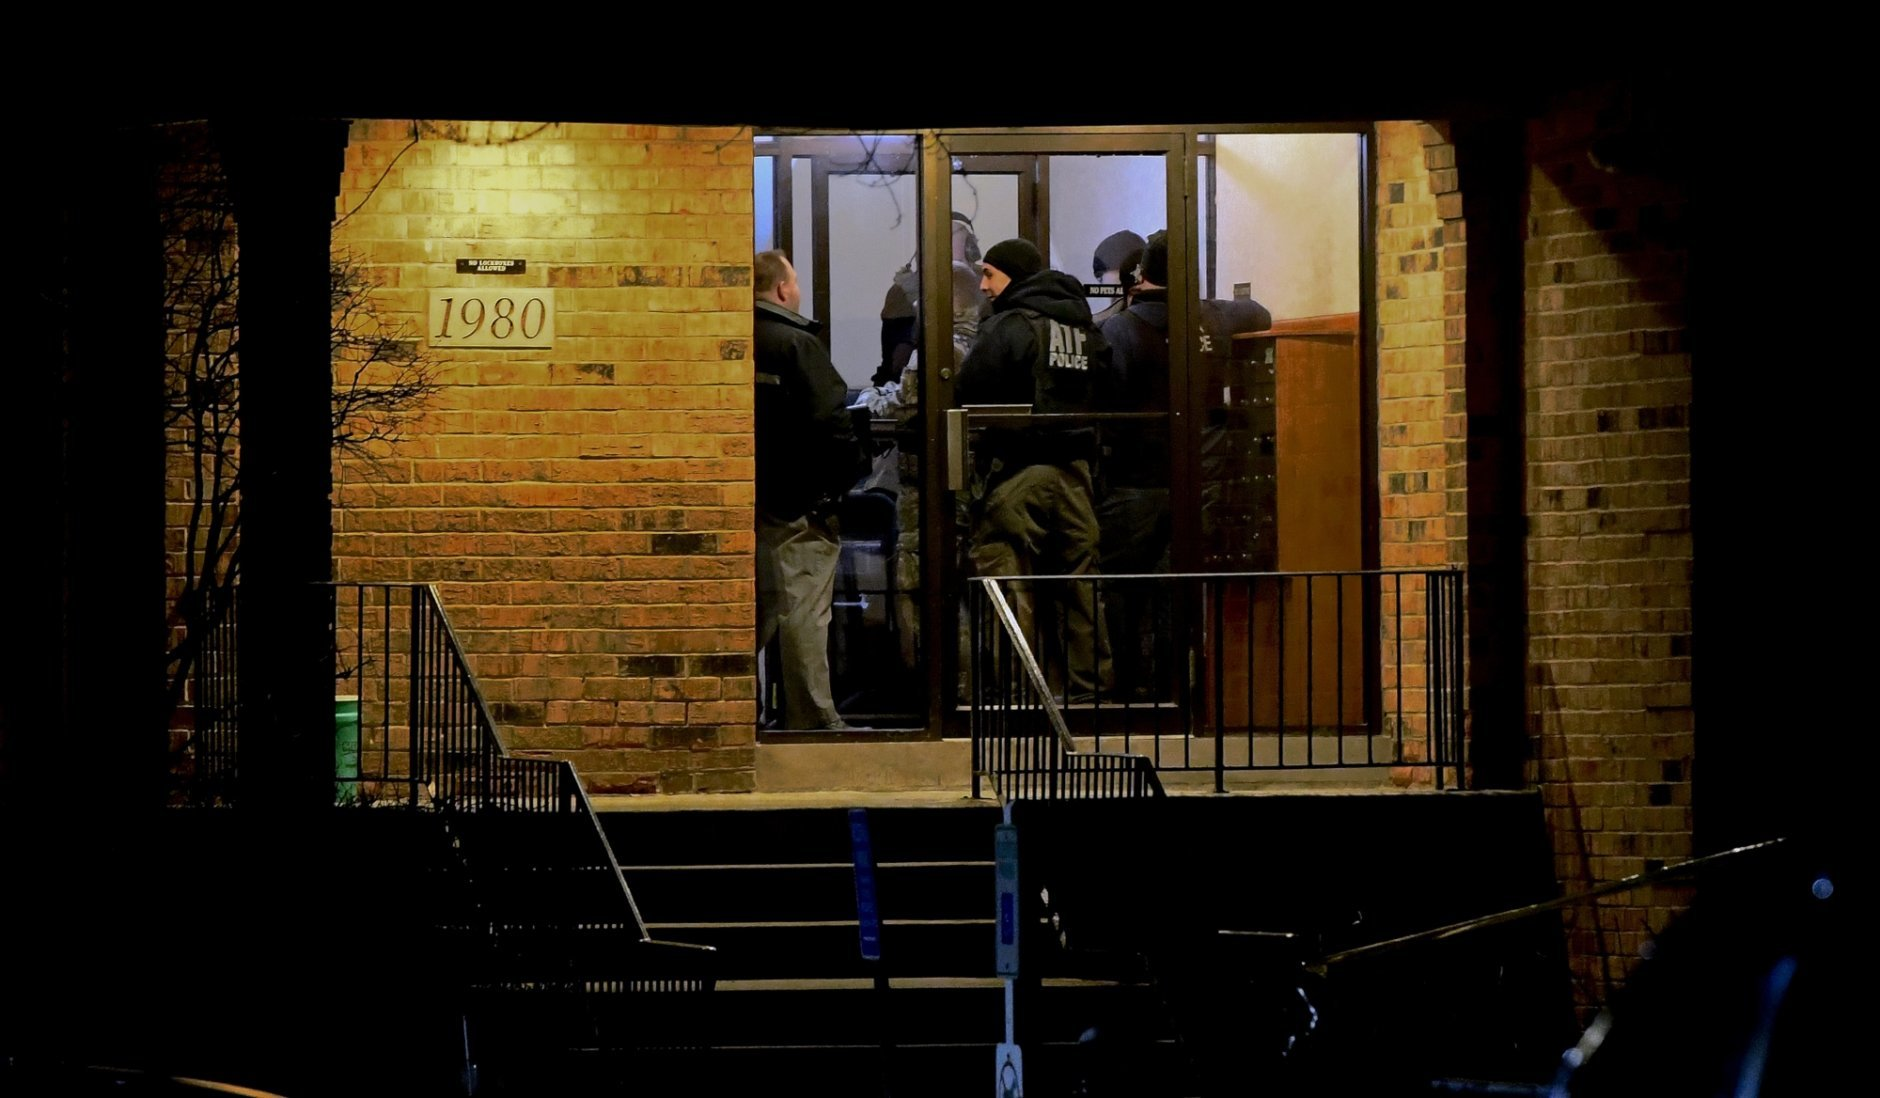 Investigators enter an apartment building Friday, Feb. 15, 2019, in Aurora, Ill., where a man who police say fatally shot several people and injured police officers at a manufacturing plant in Aurora is believed to have lived. (AP Photo/Matt Marton)